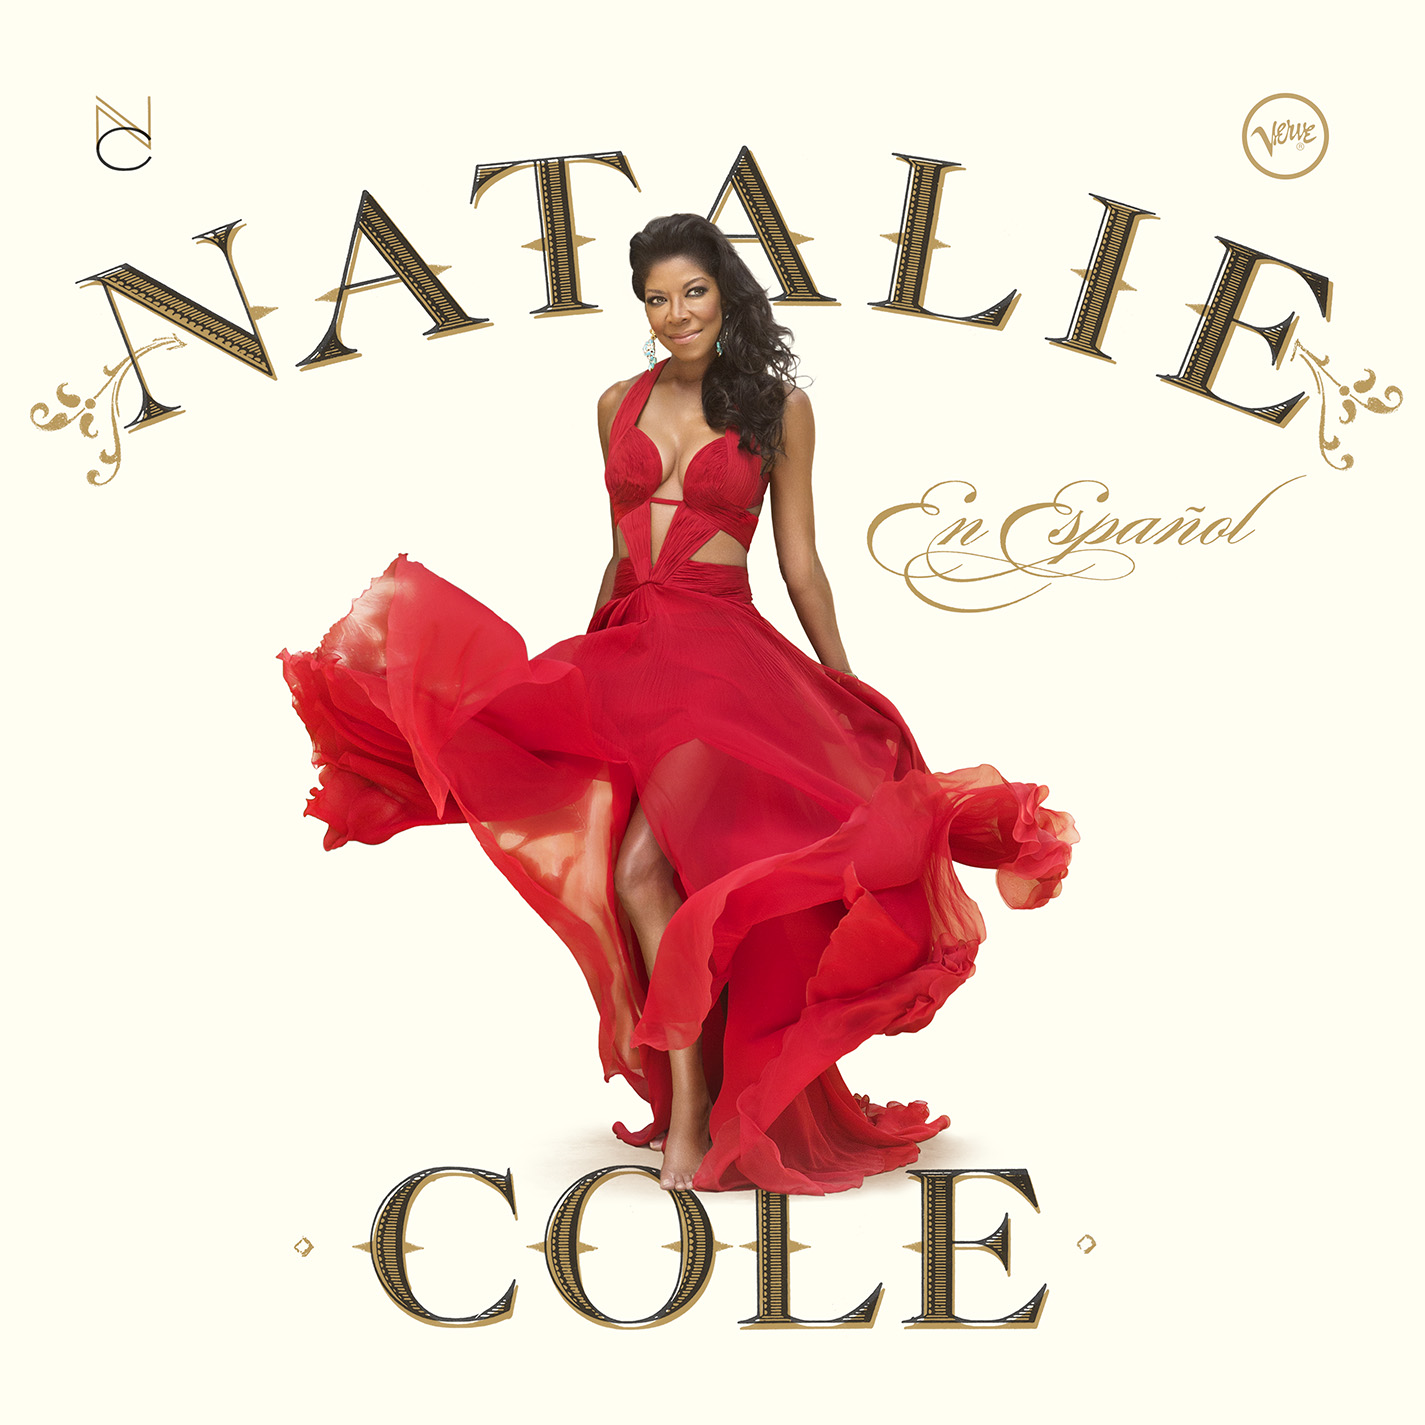 Natalie Cole Espanol CD cover.